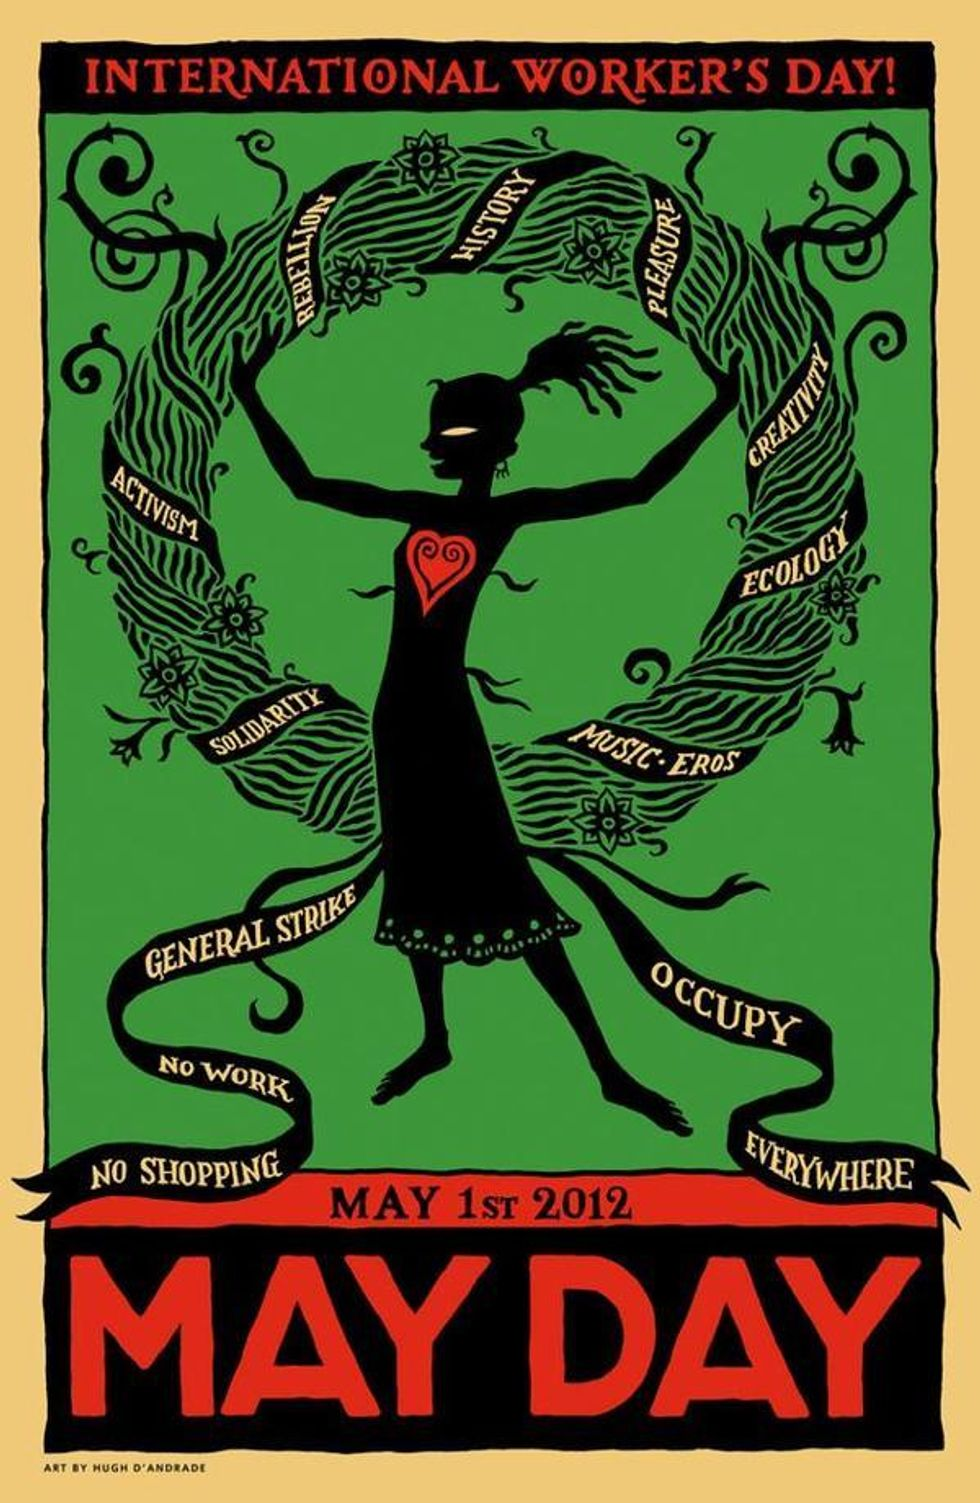 Occupy Wall Street's NYC May Day Schedule